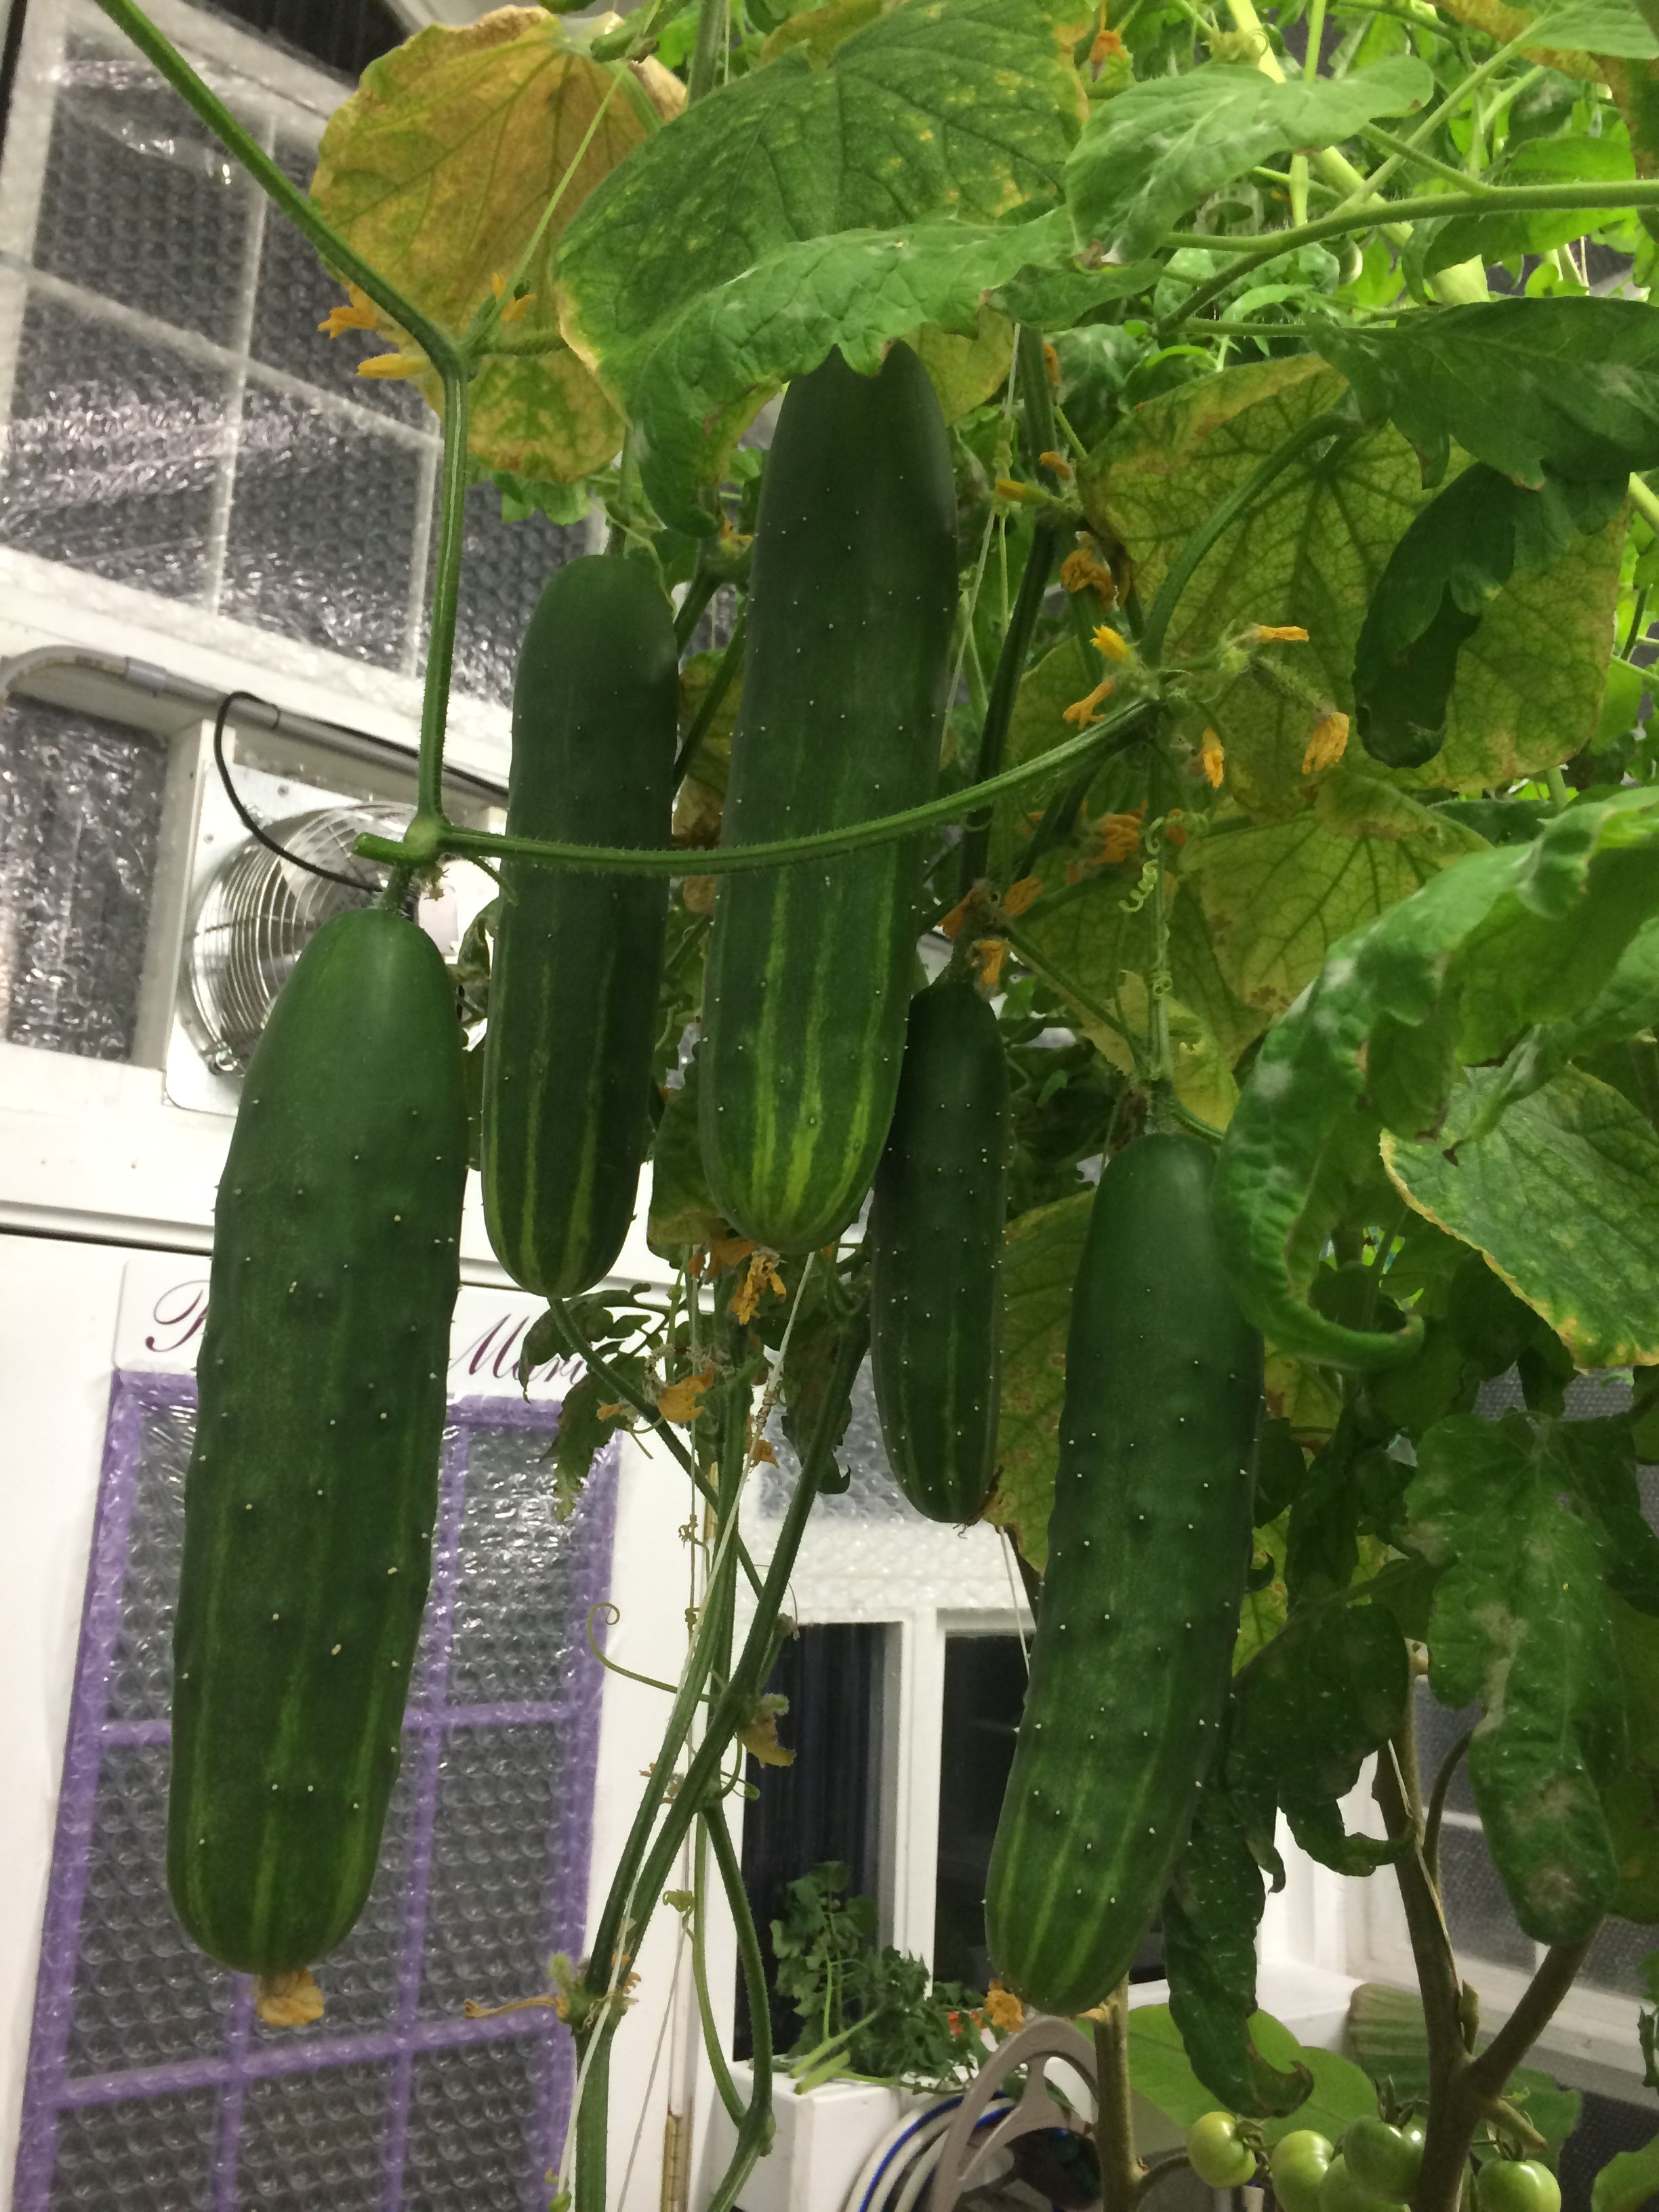 hight resolution of hydroponic grown cucumbers from dutch bucket setup